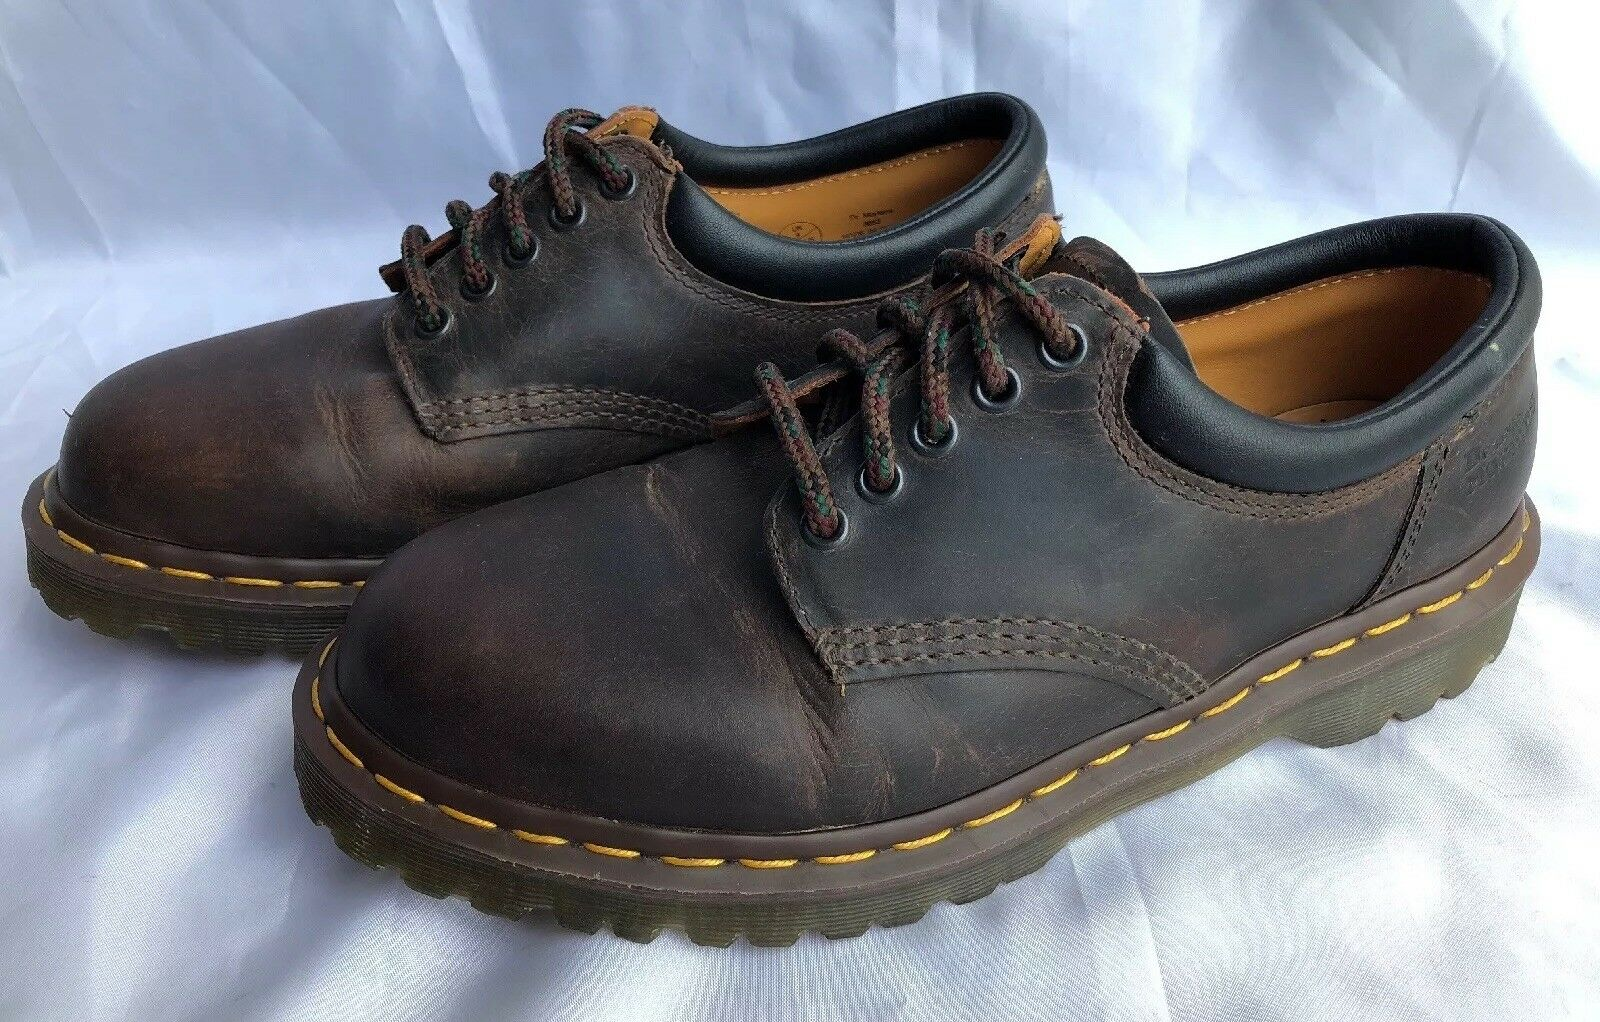 Dr Martens Unisex Brown AirWair Classic Ankle Boot shoes 8053 Size US 10